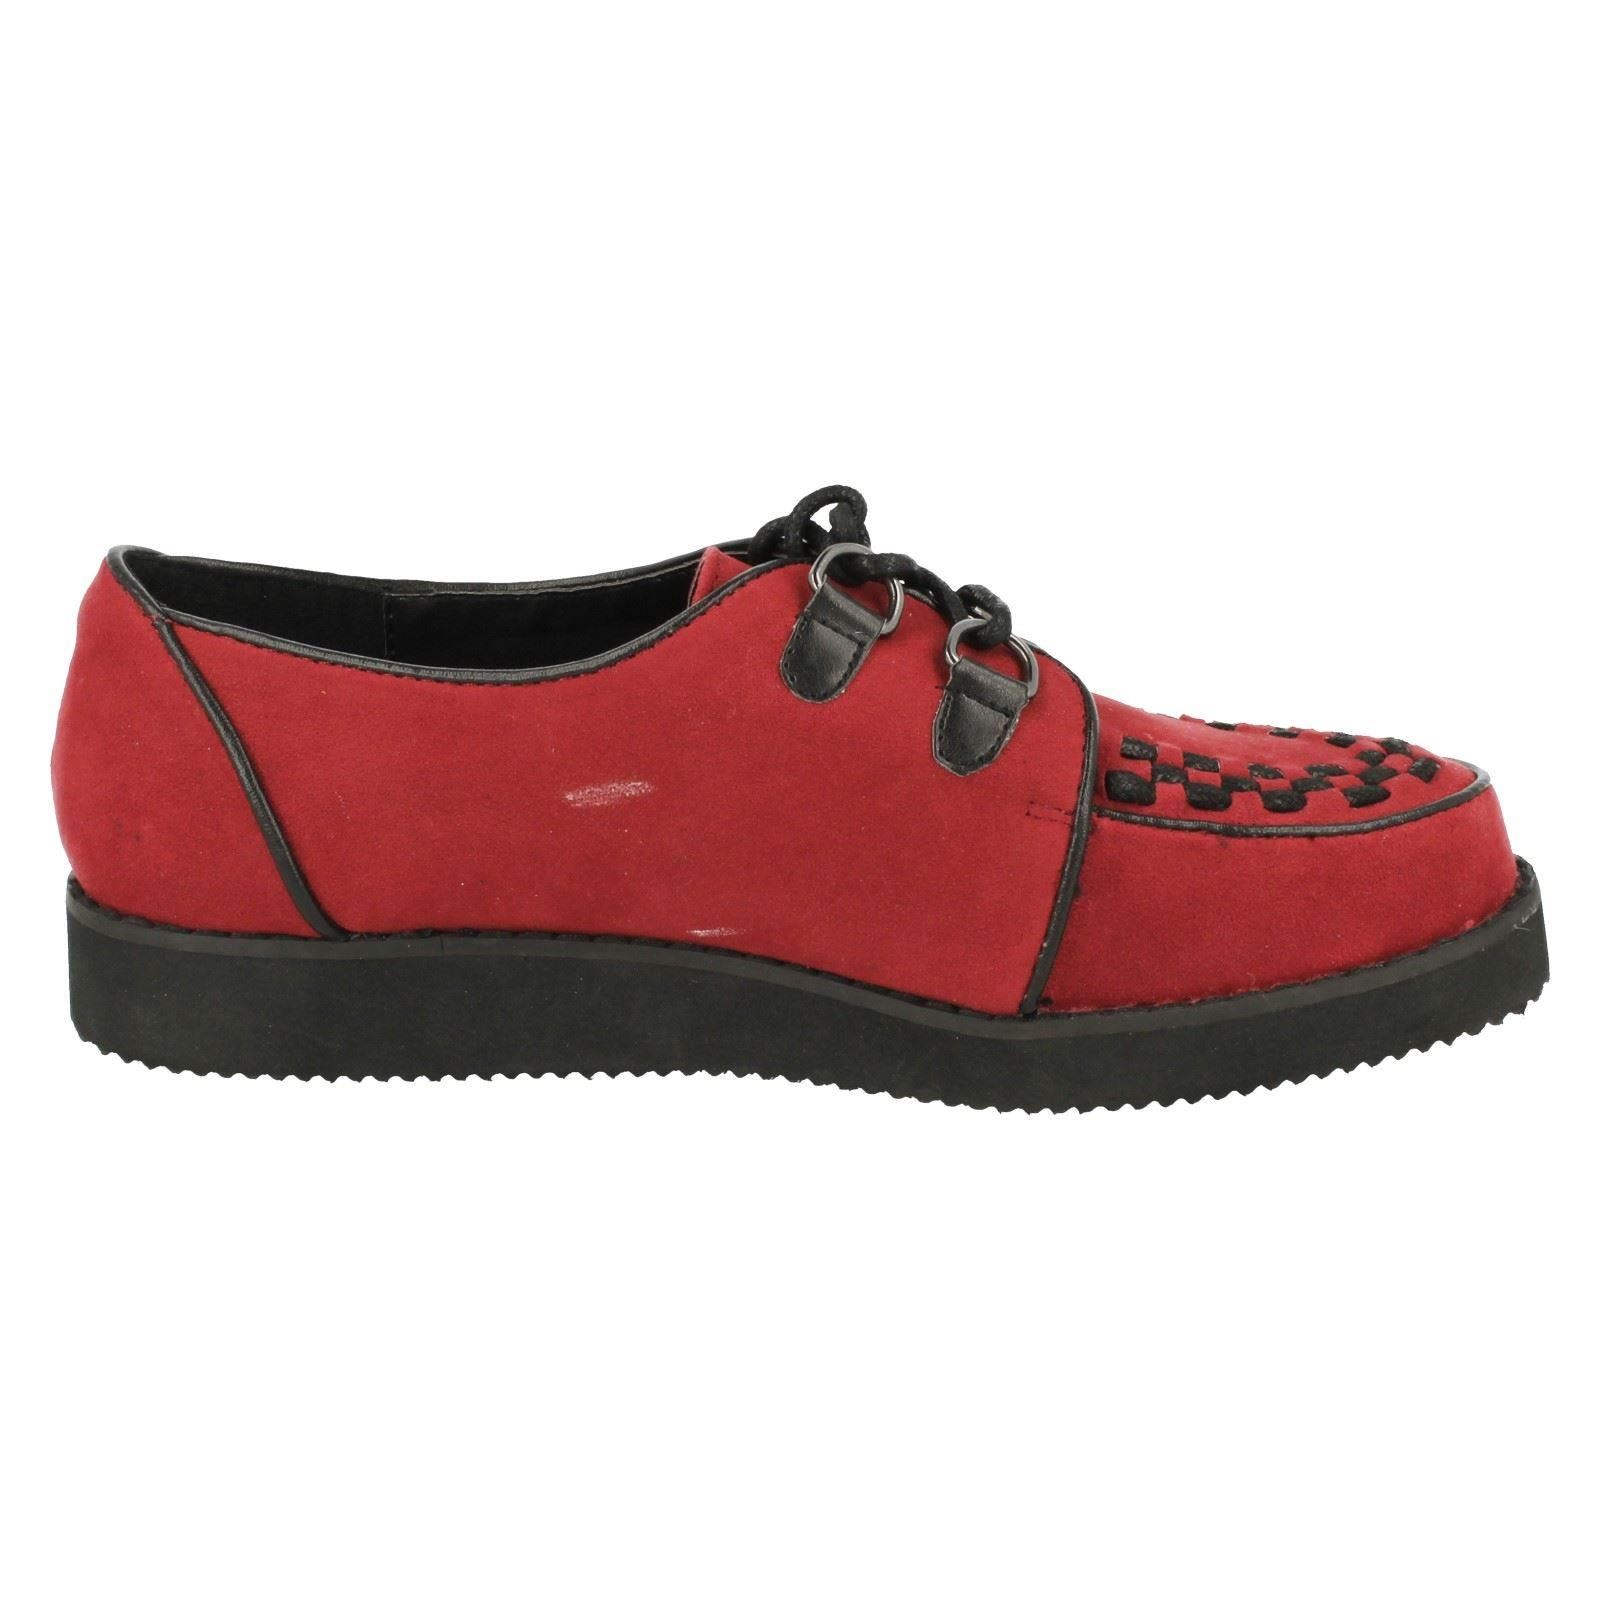 db6e40bc5d6 Ladies Spot on Chunky Sole Shoes F9568 Red UK 5 Standard